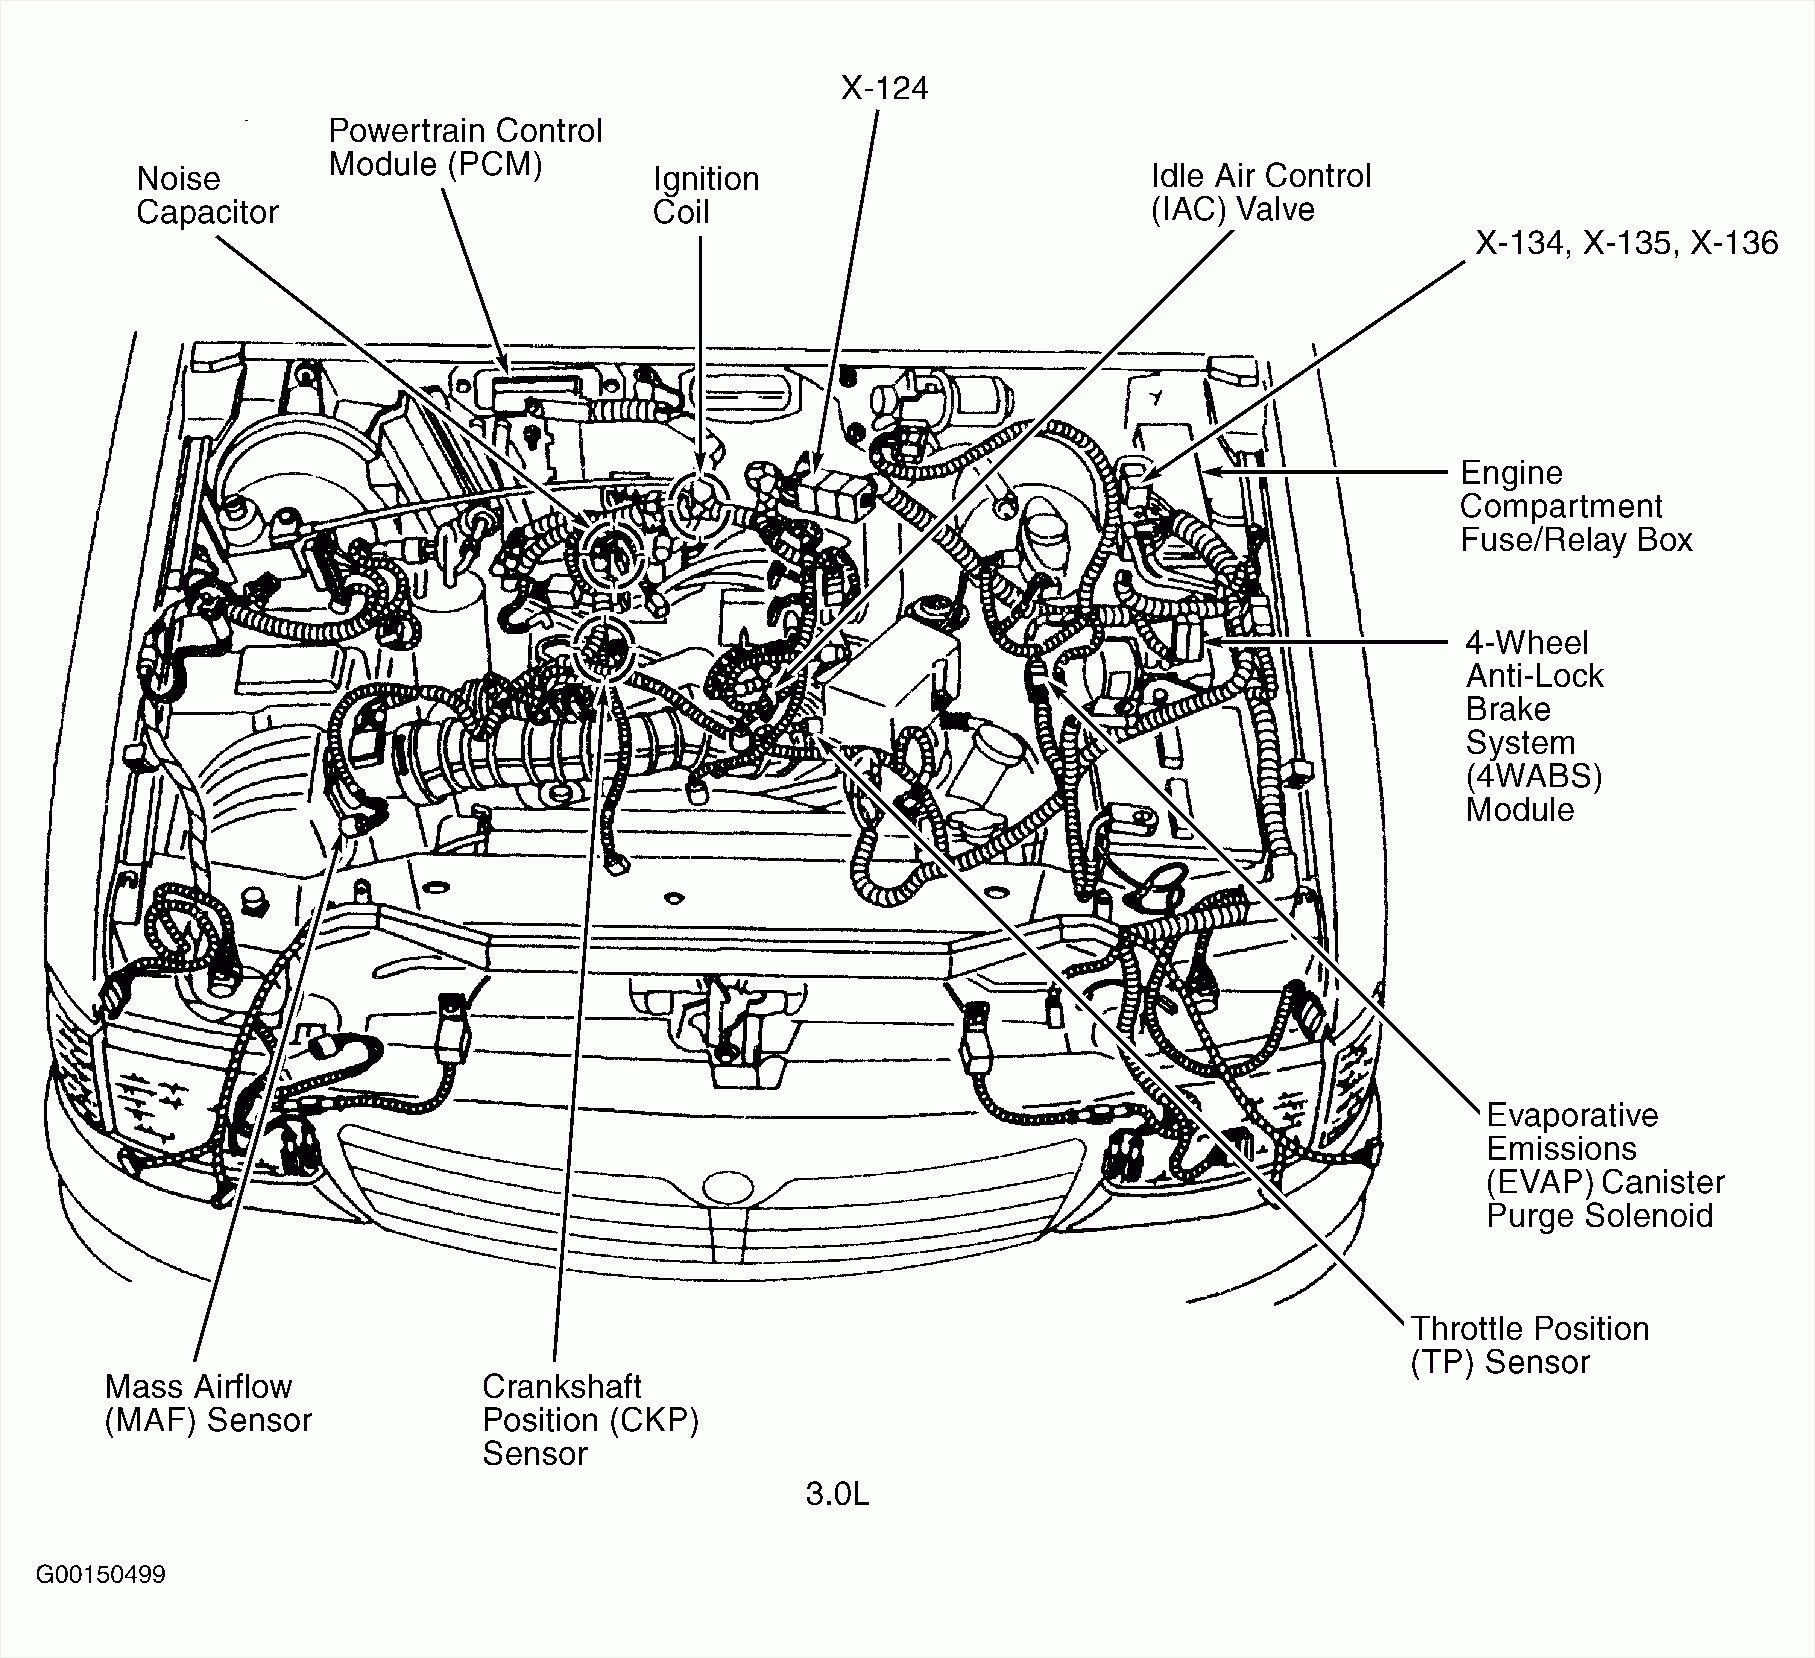 1998 Vw Beetle Engine Diagram Wiring Diagrams Site Data A Data A Geasparquet It